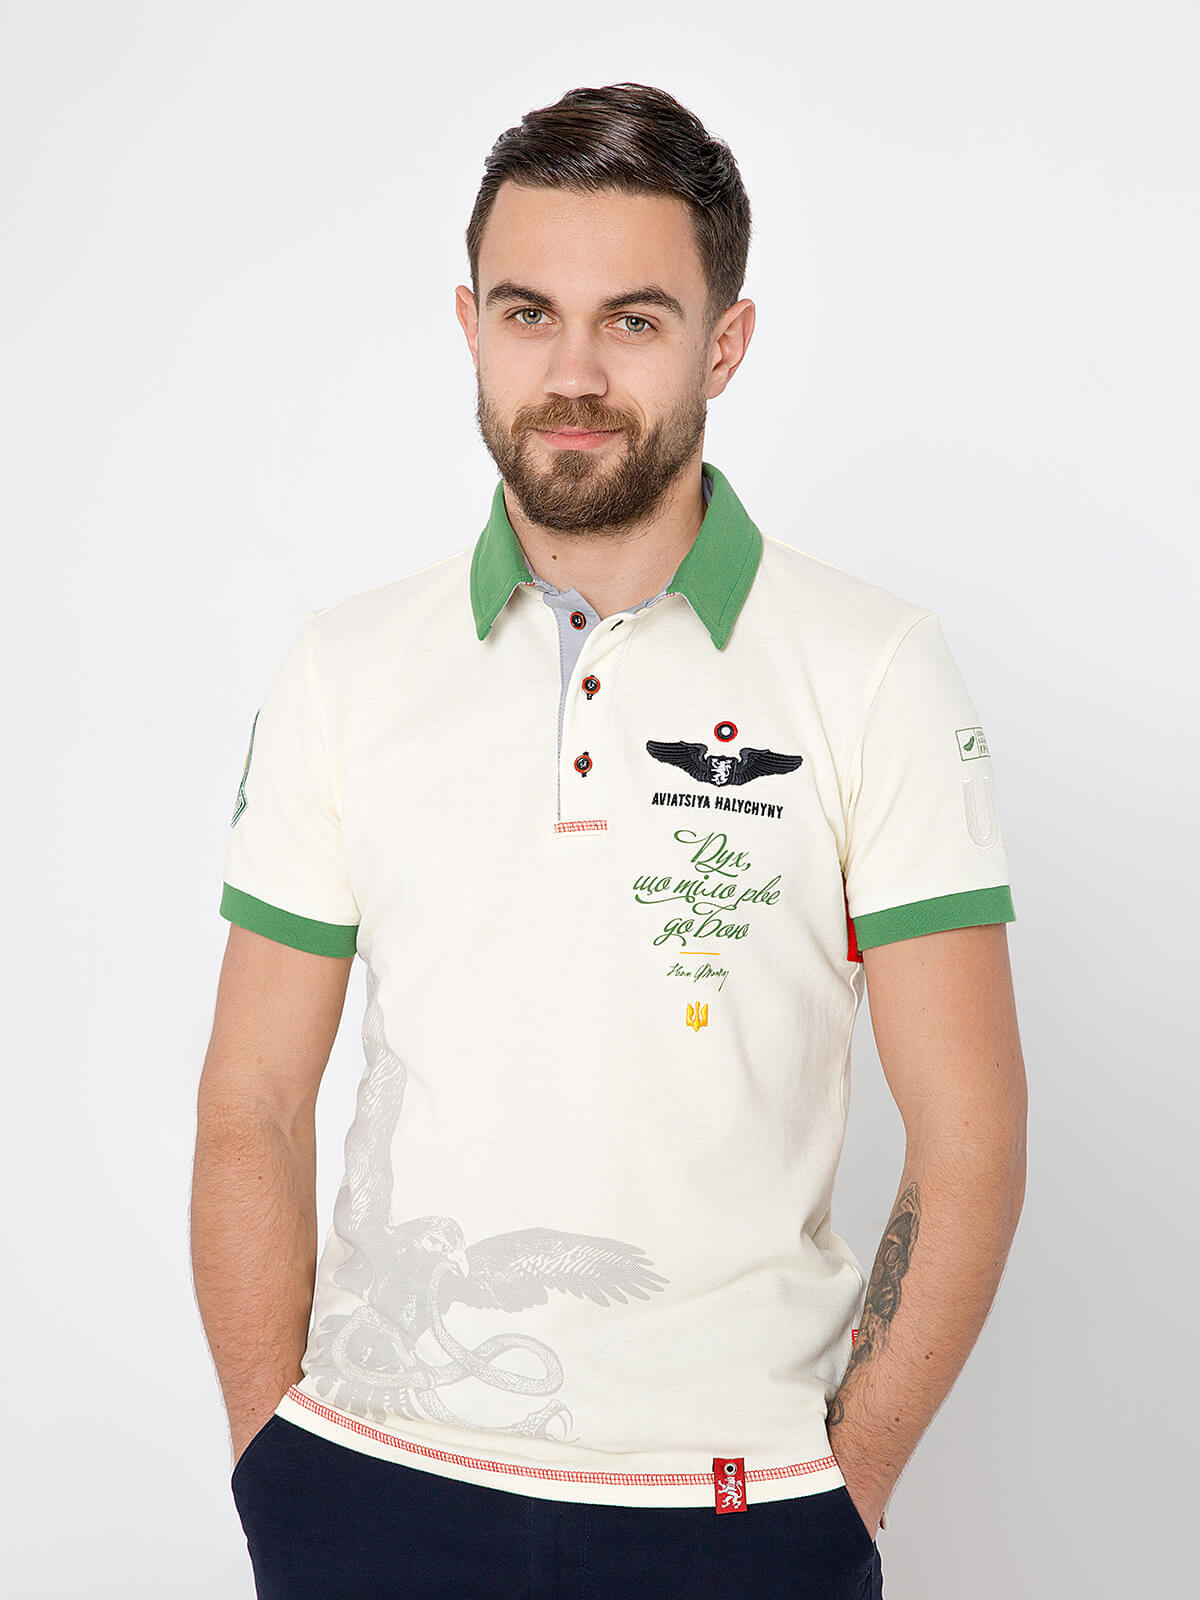 Men's Polo Shirt Ivan Franko. Color ivory. Pique fabric: 100% cotton.